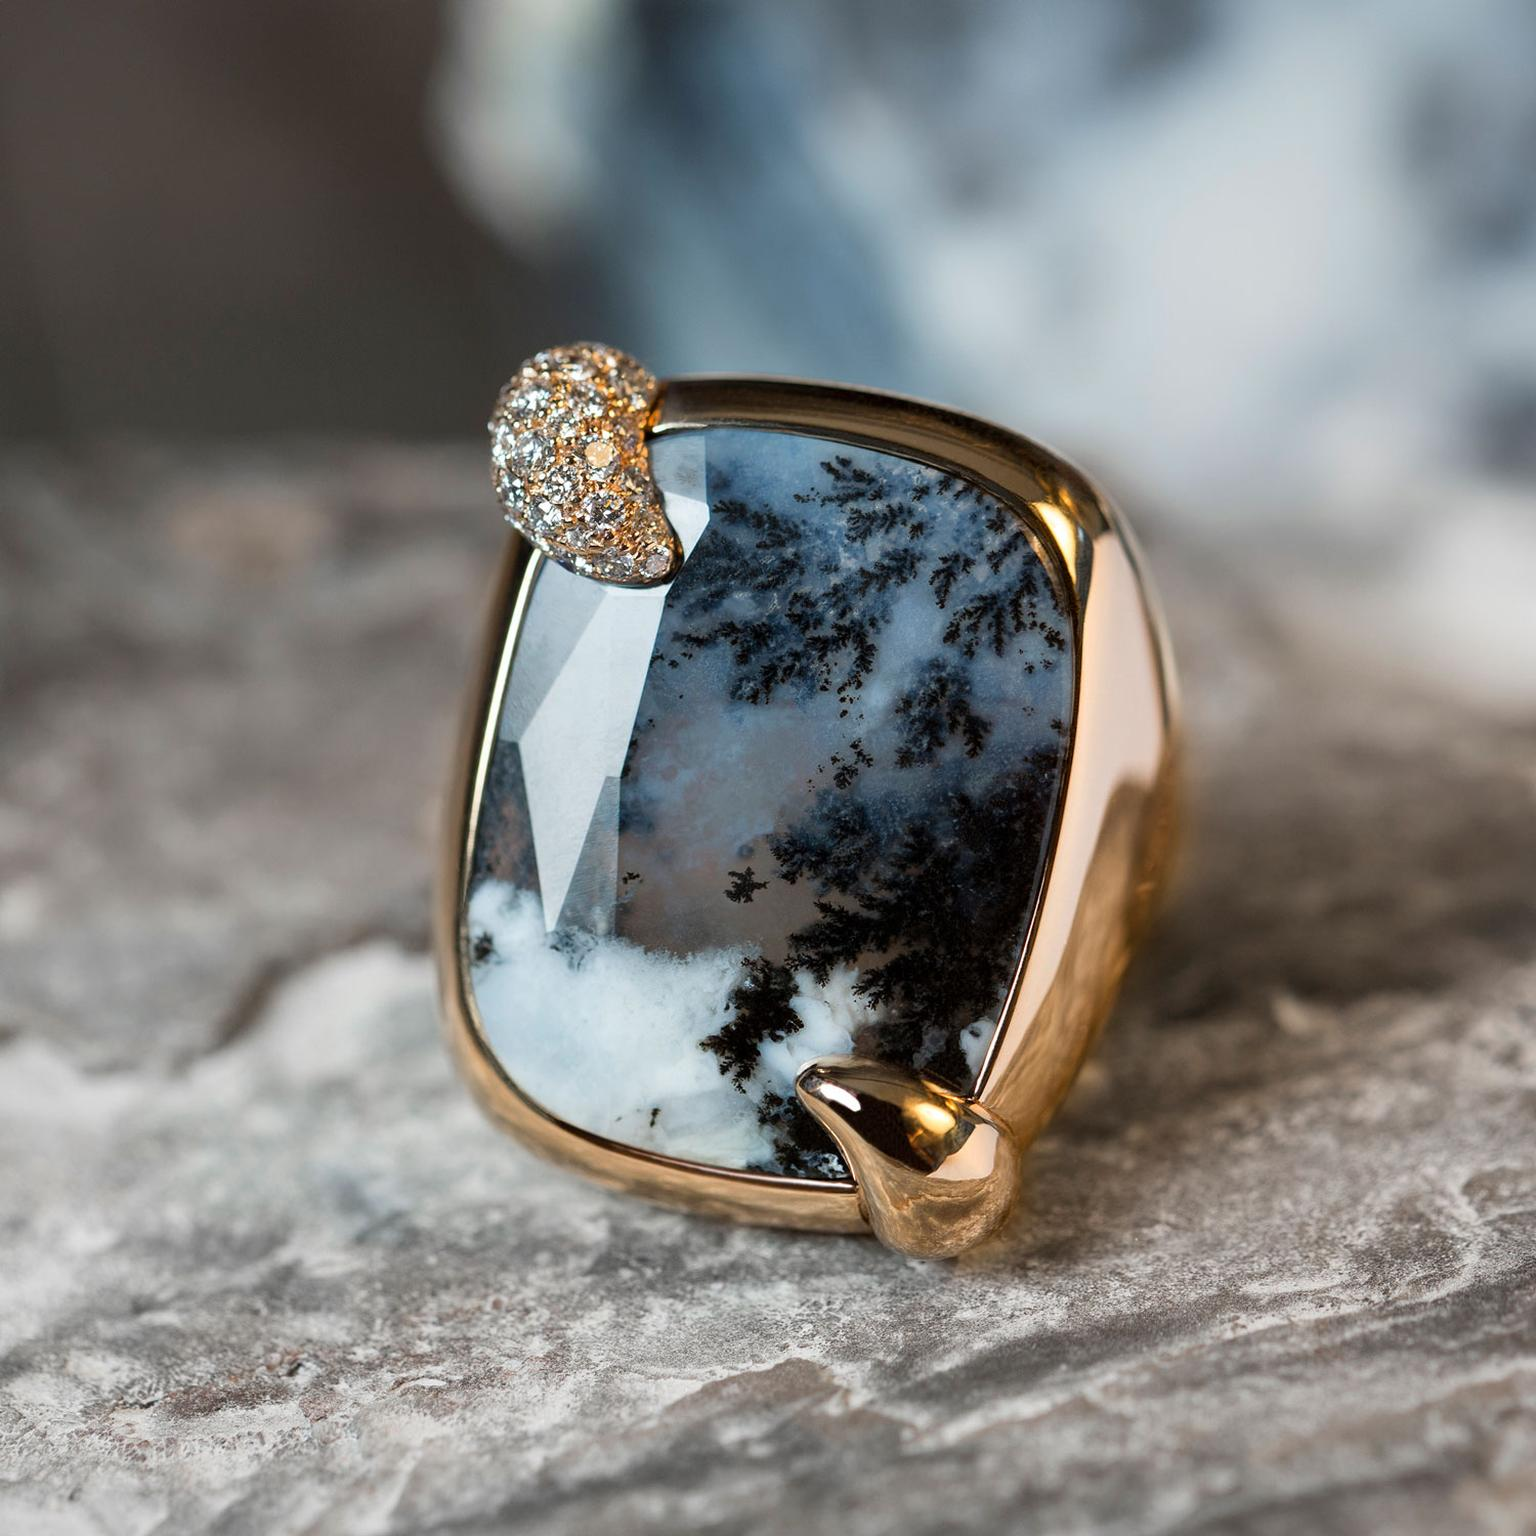 Pomellato Ritratto Stormy Weather dendritic agate ring